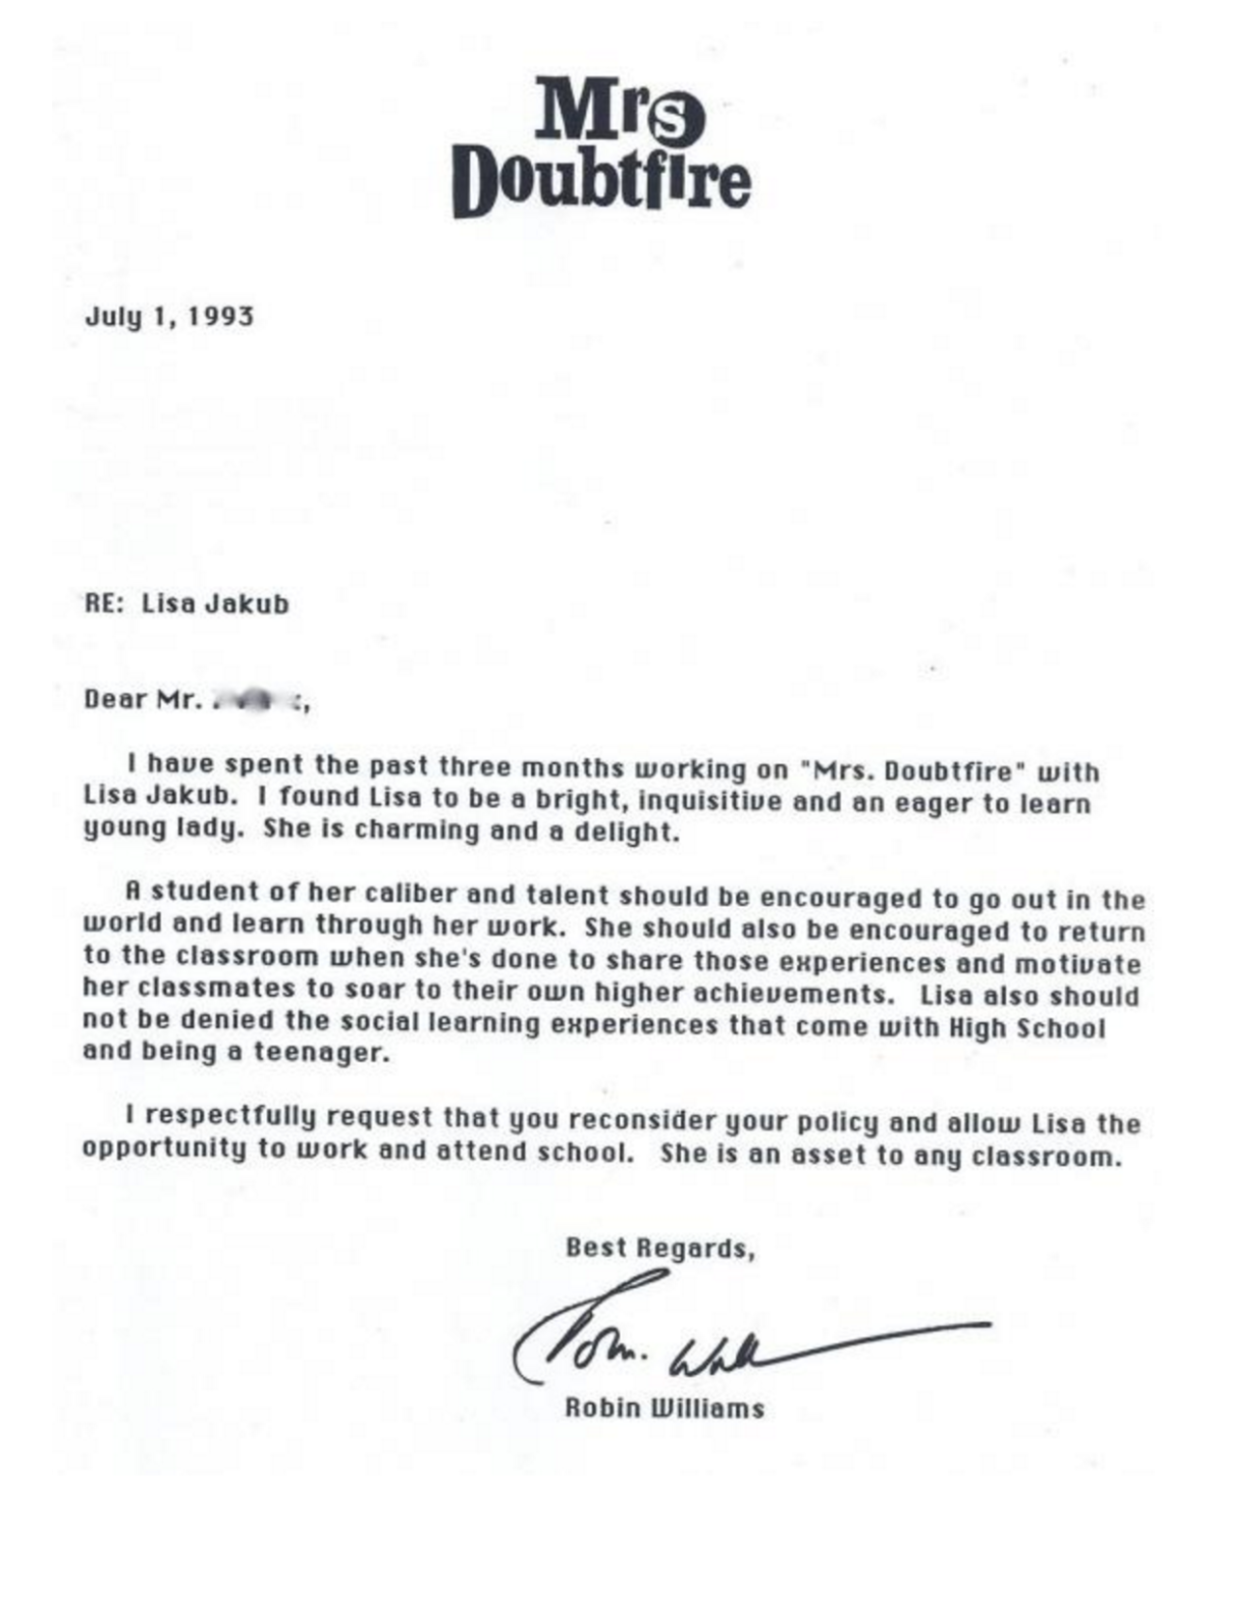 Robin Williams wrote this letter to the school of his